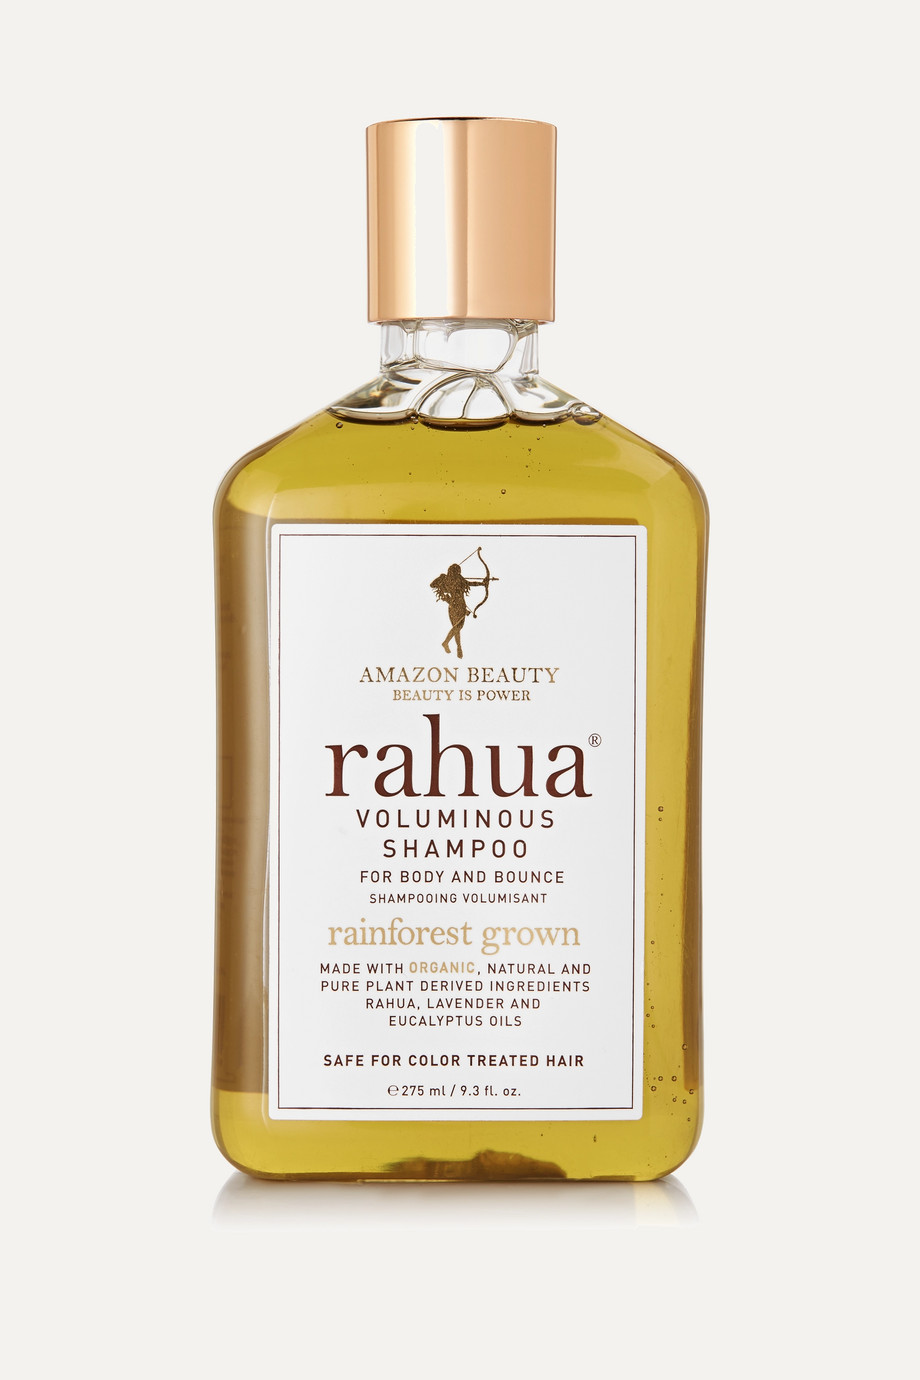 Rahua Voluminous Shampoo, 275ml